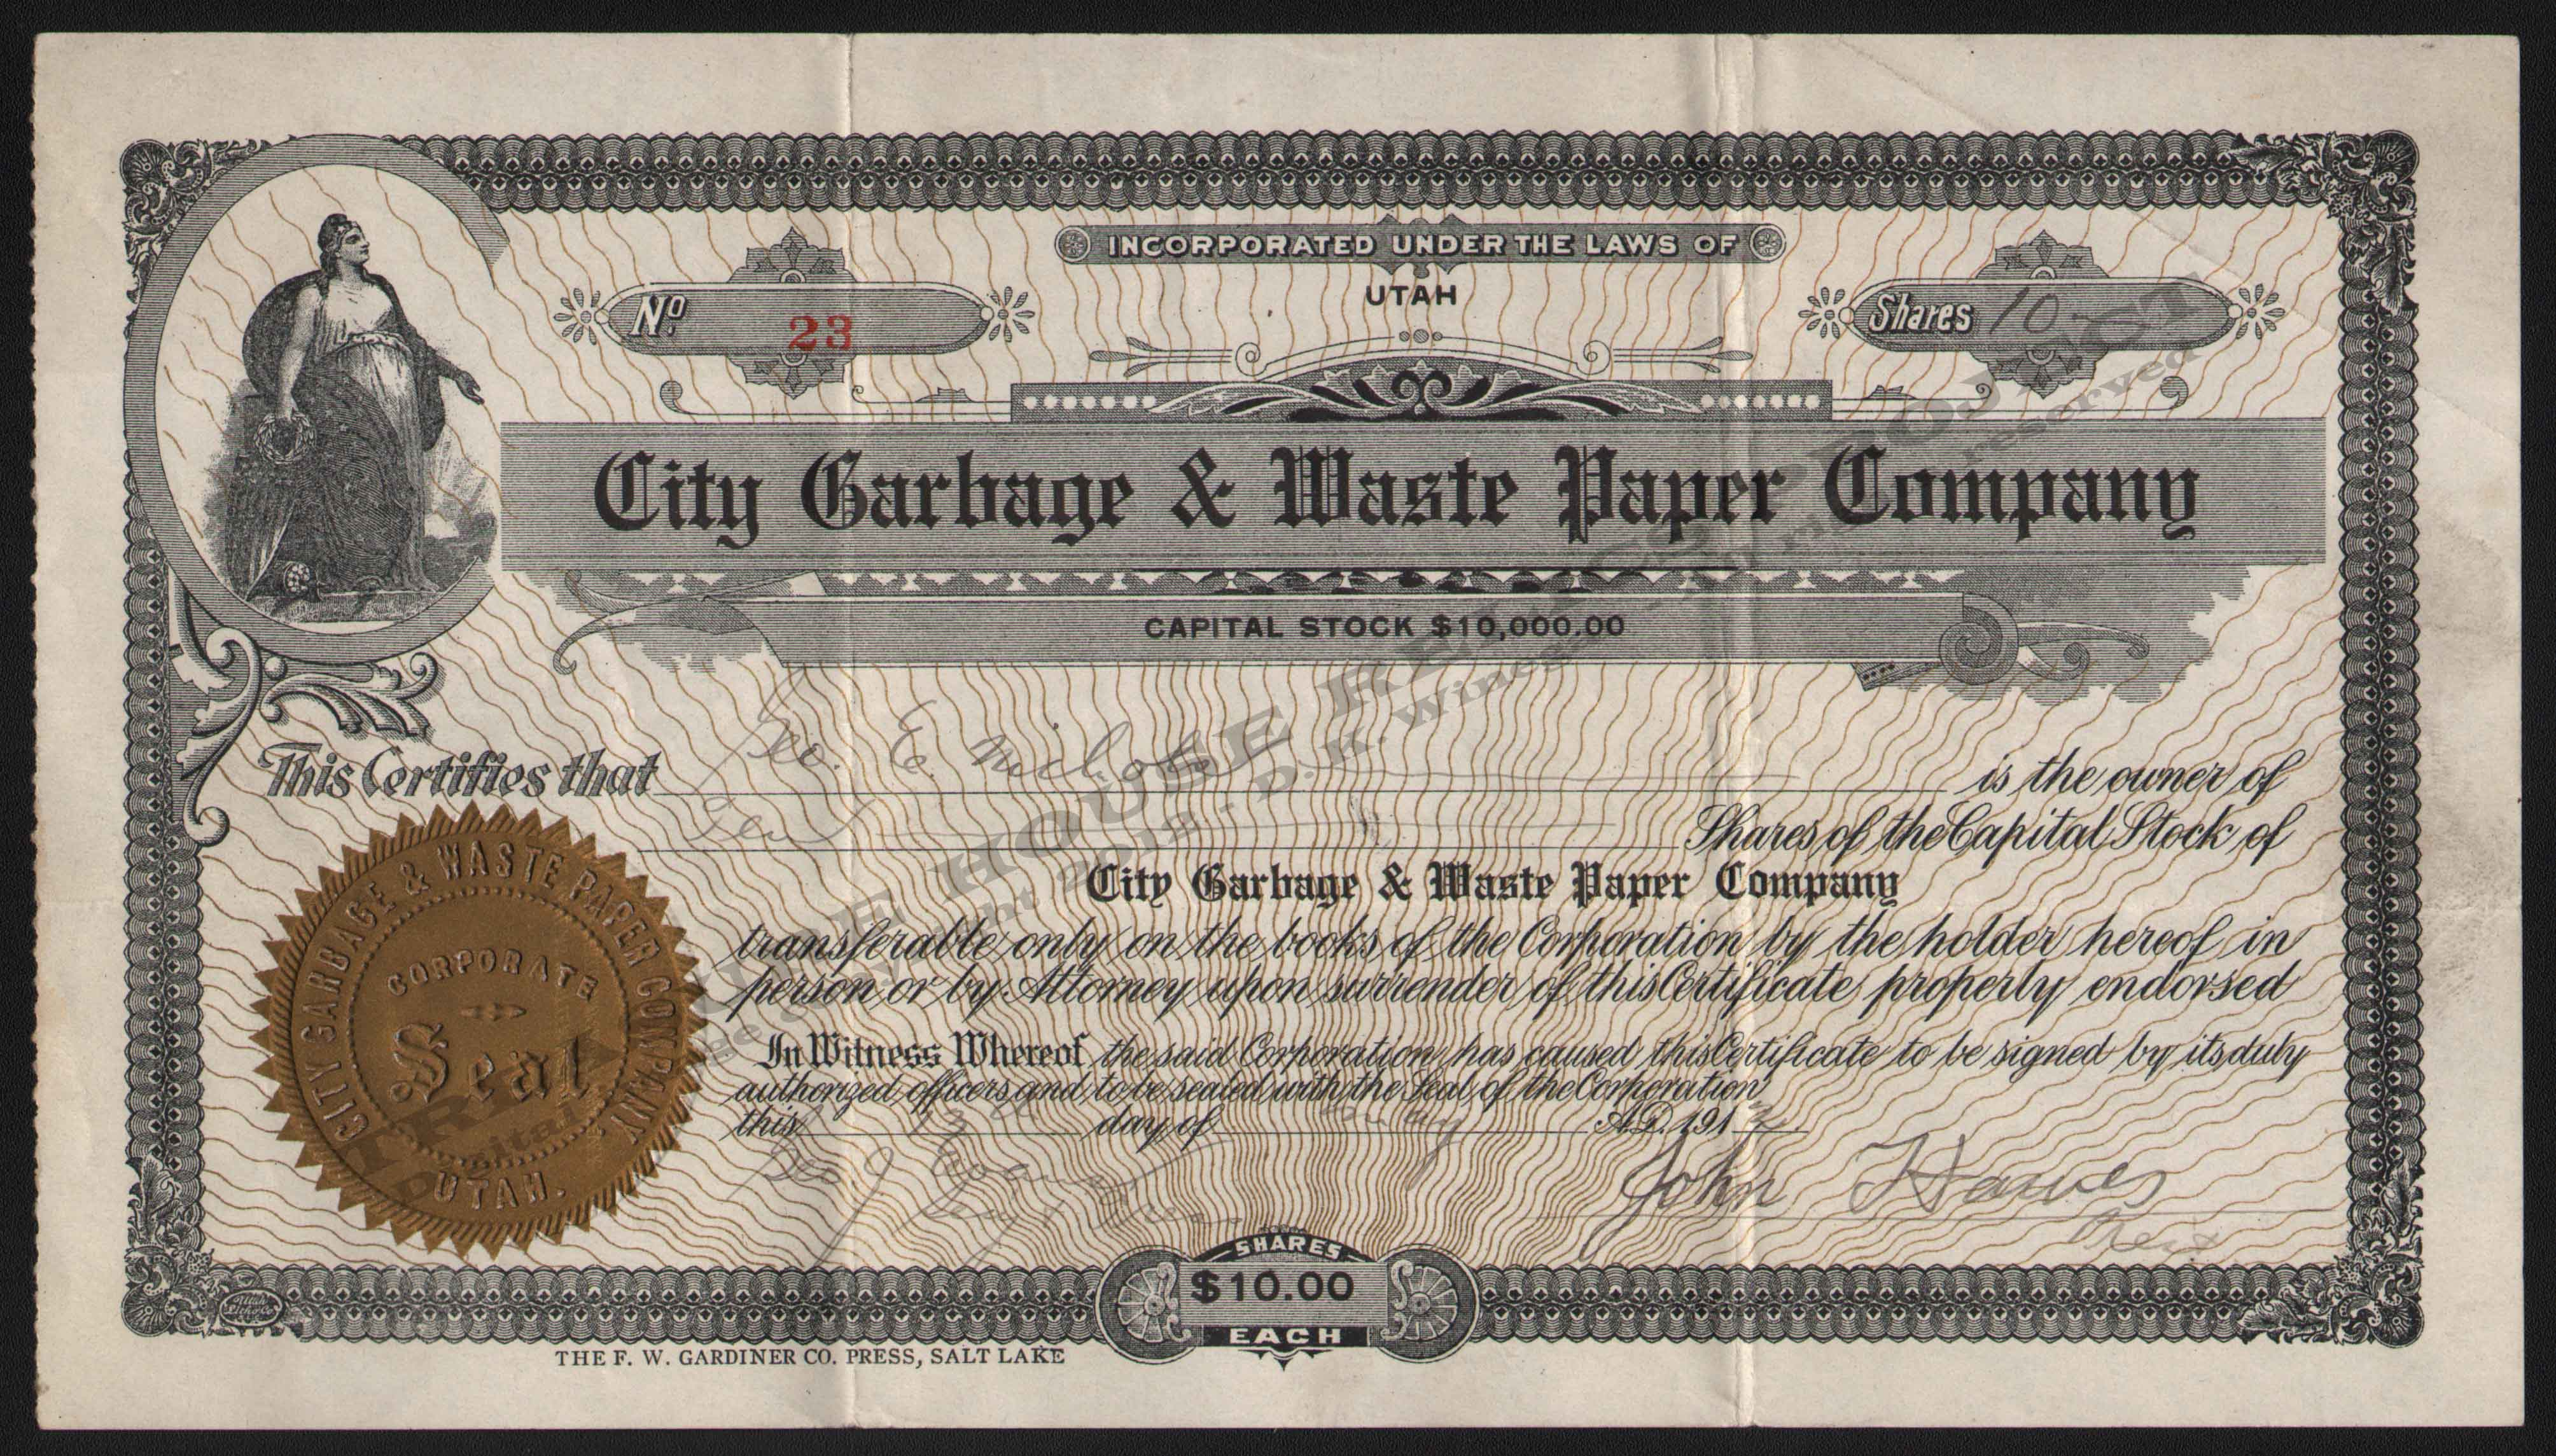 LETTERHEAD/CITY_GARBAGE_WASTE_PAPER_CO_23_1912_BAM_400_crop_emboss.jpg